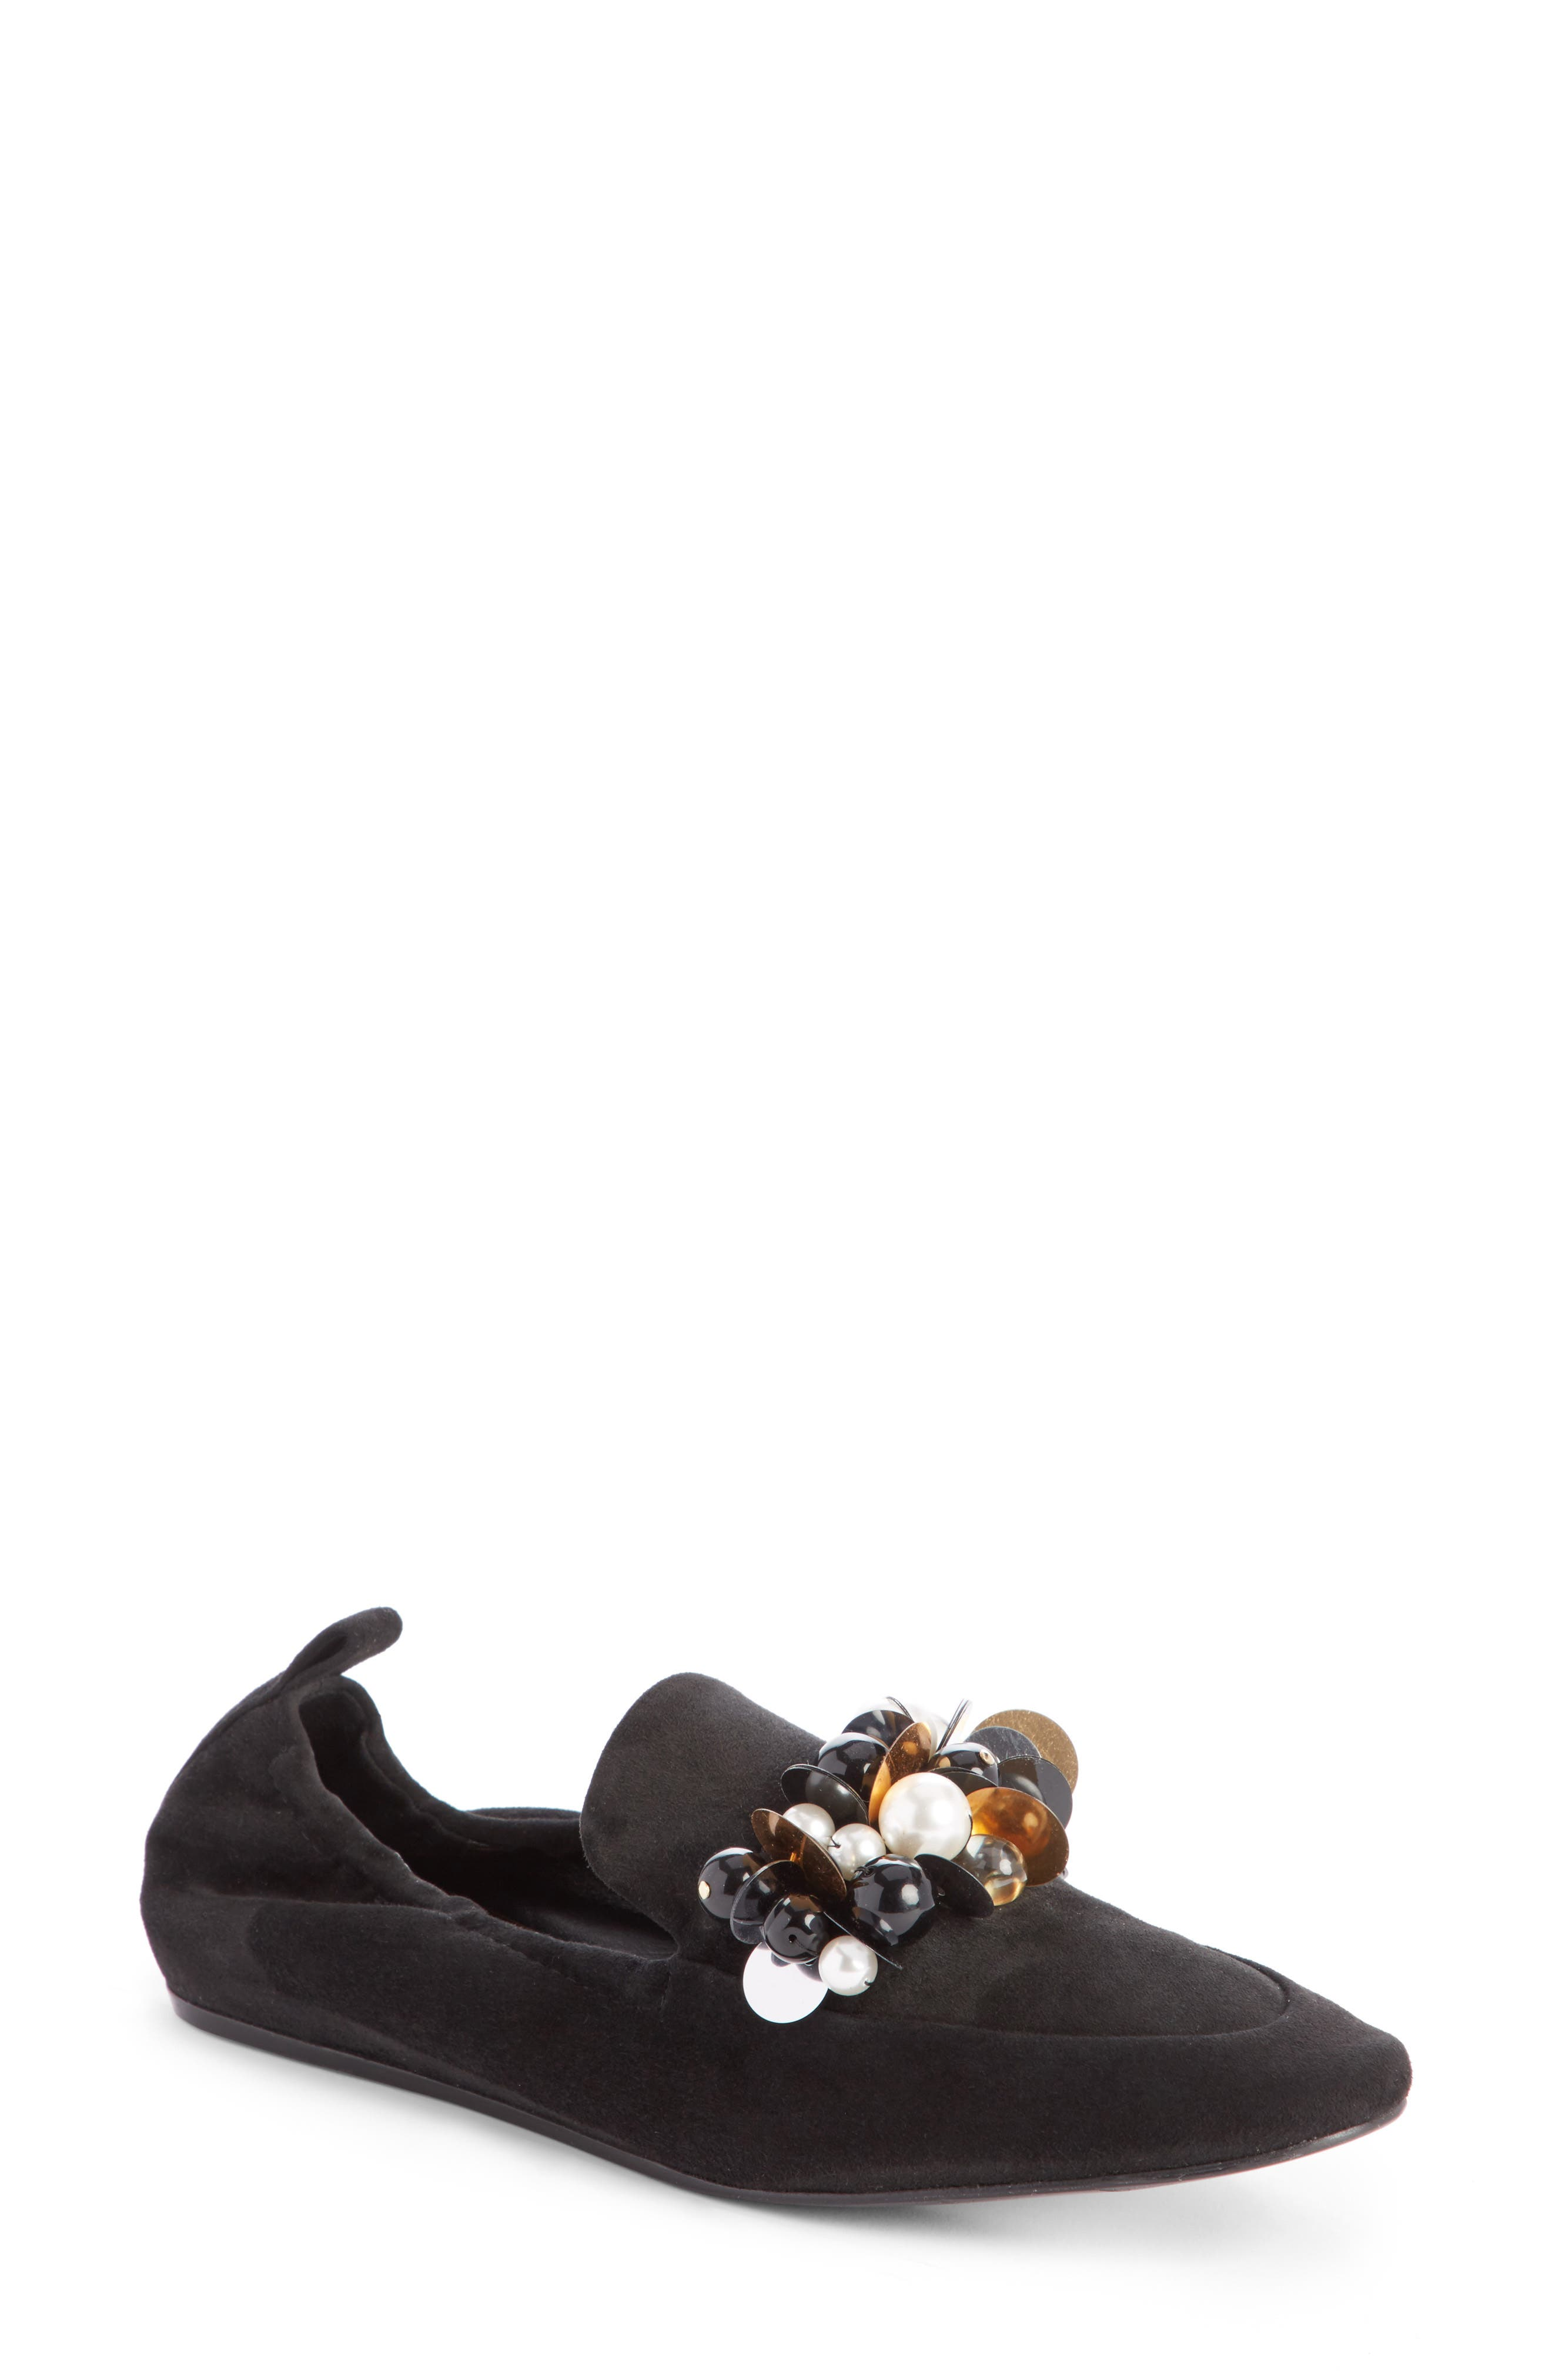 Pearl Slipper Loafer,                             Main thumbnail 1, color,                             Black